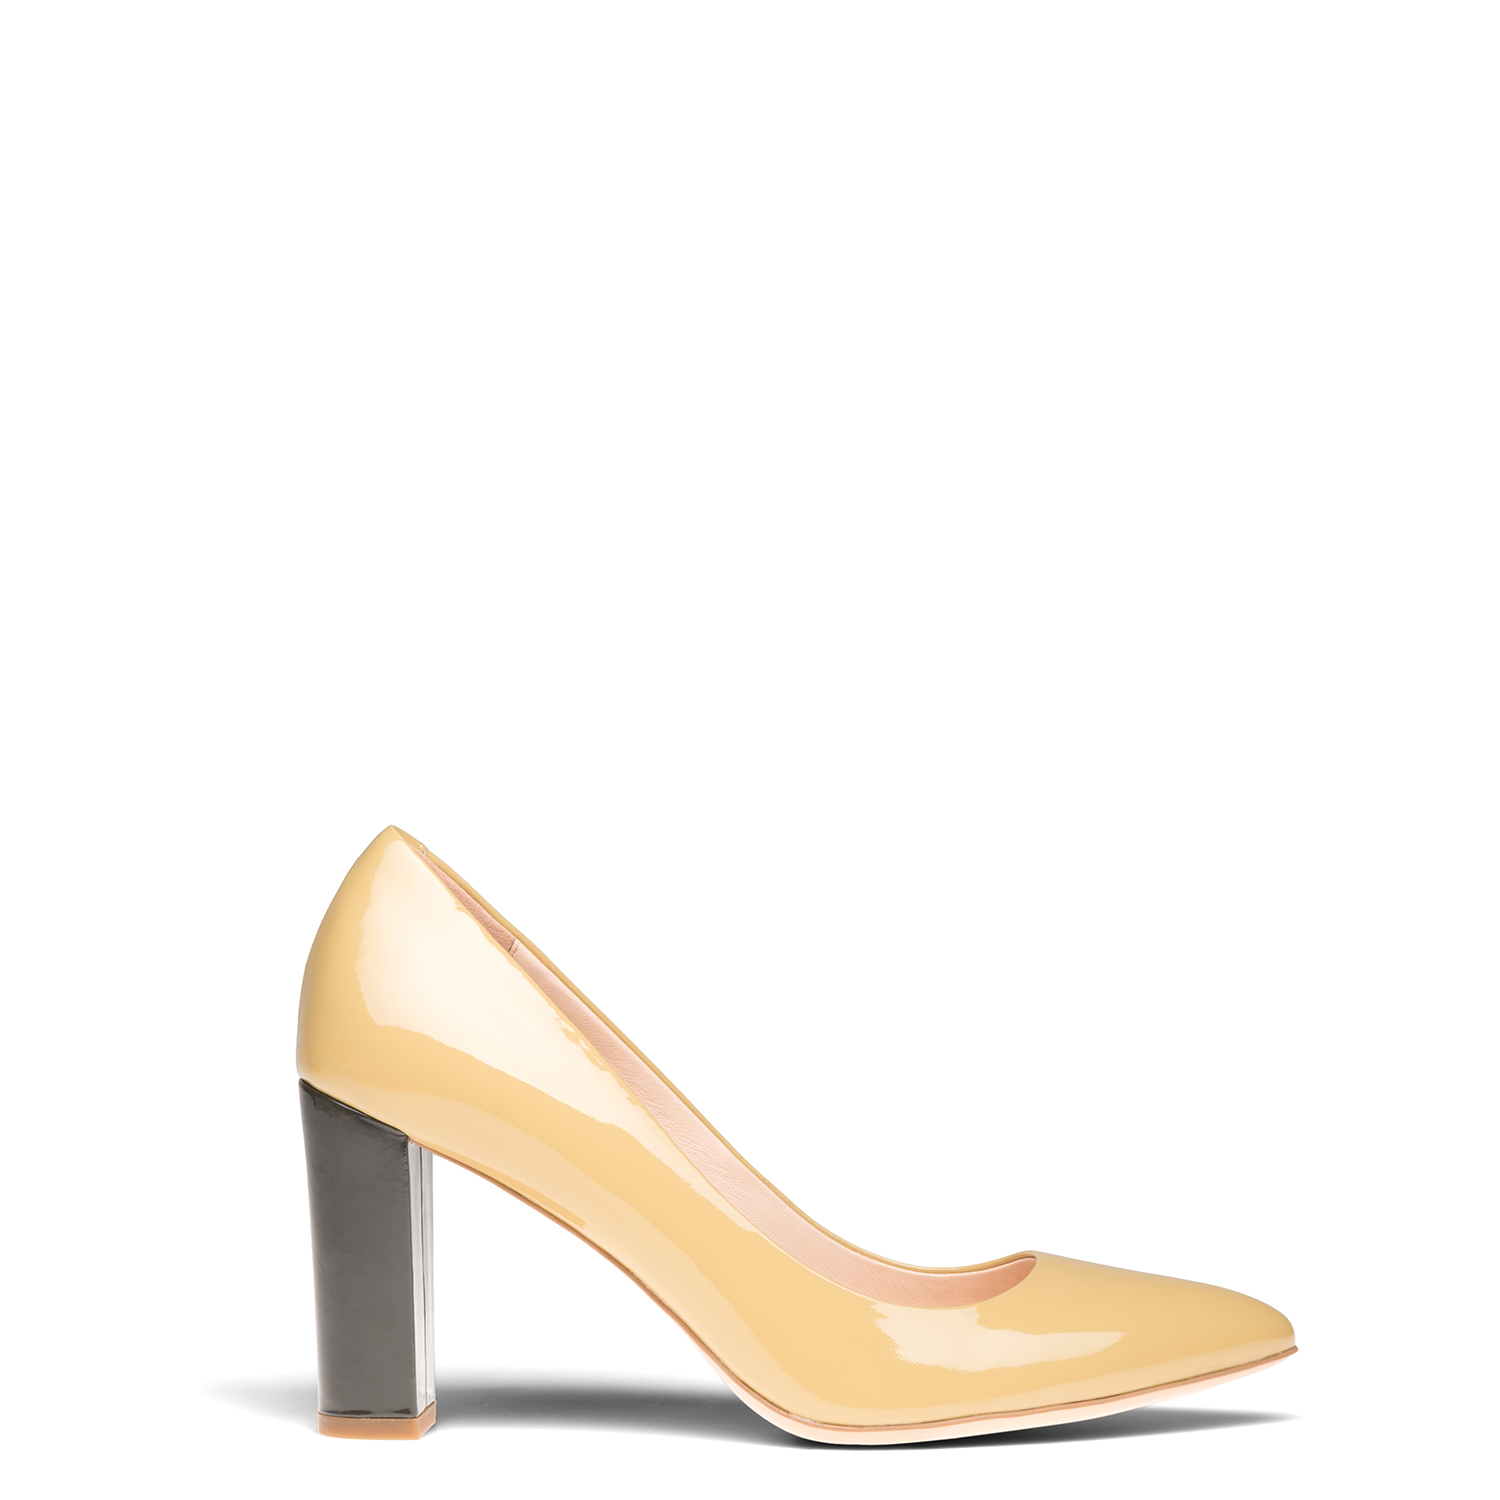 Women's shoes CARLO PAZOLINI FL-GVE3-16